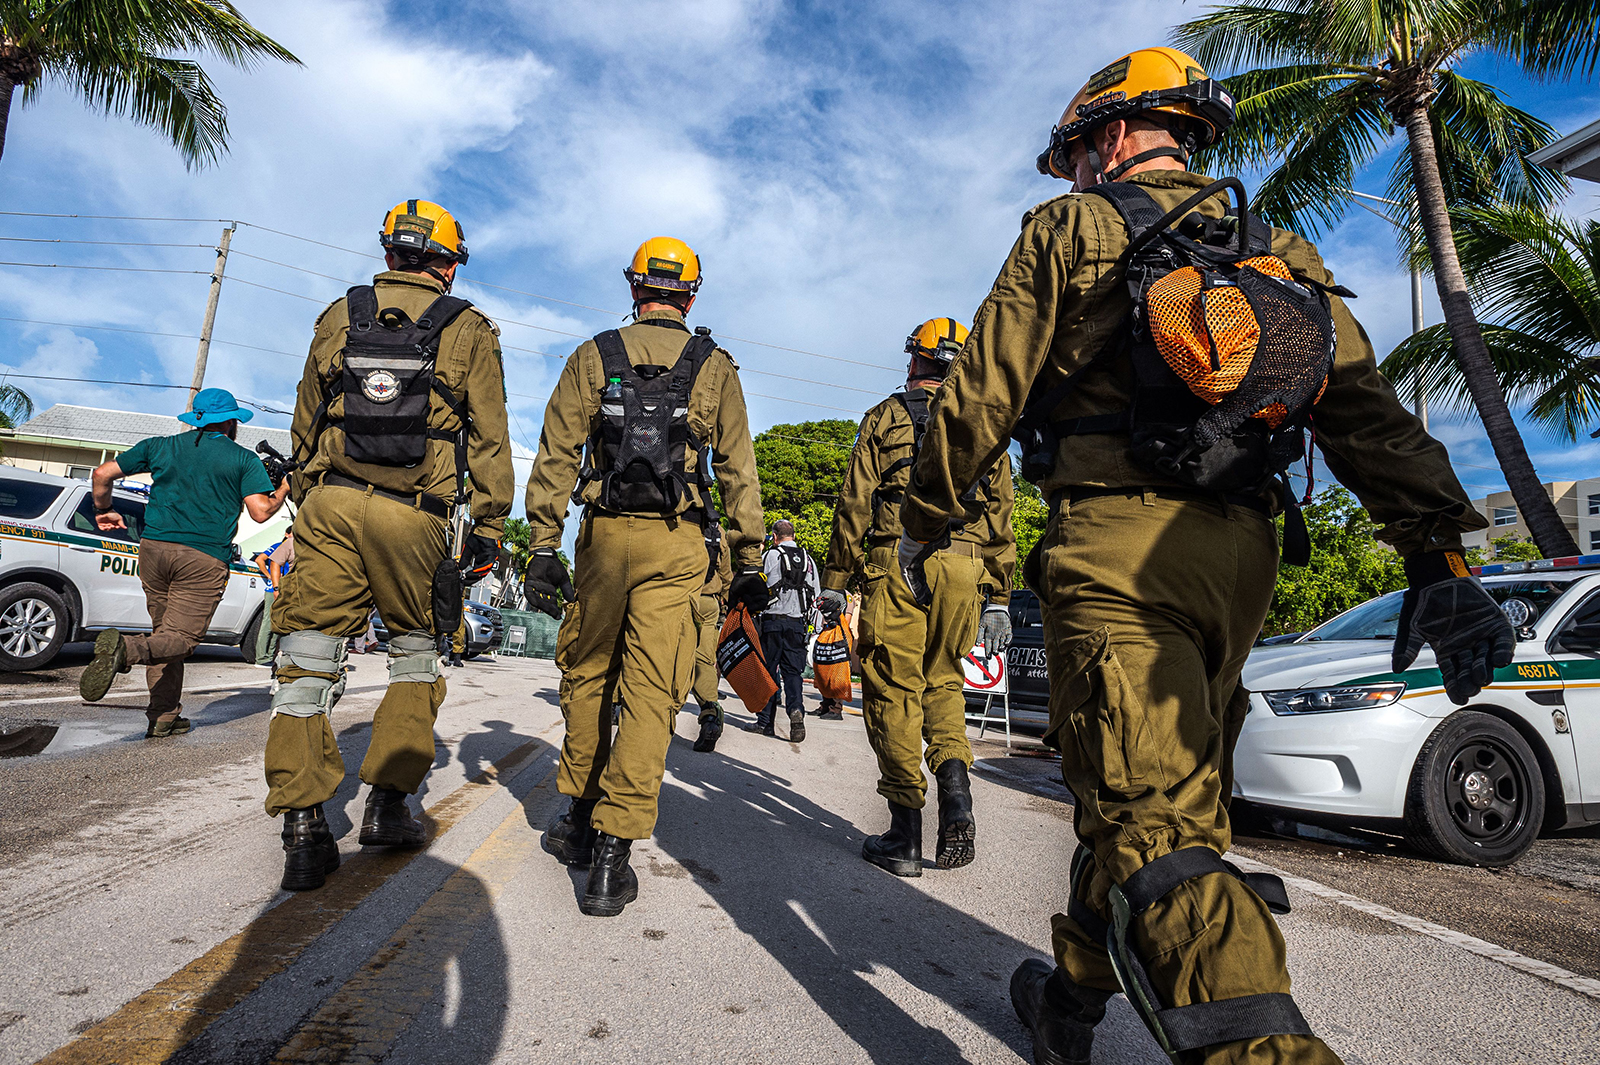 Members of the Israel Rescuers delegation gather upon their arrival in the area near the partially collapsed 12-story Champlain Towers South condo building in the city of Surfside, Florida, on June 27.